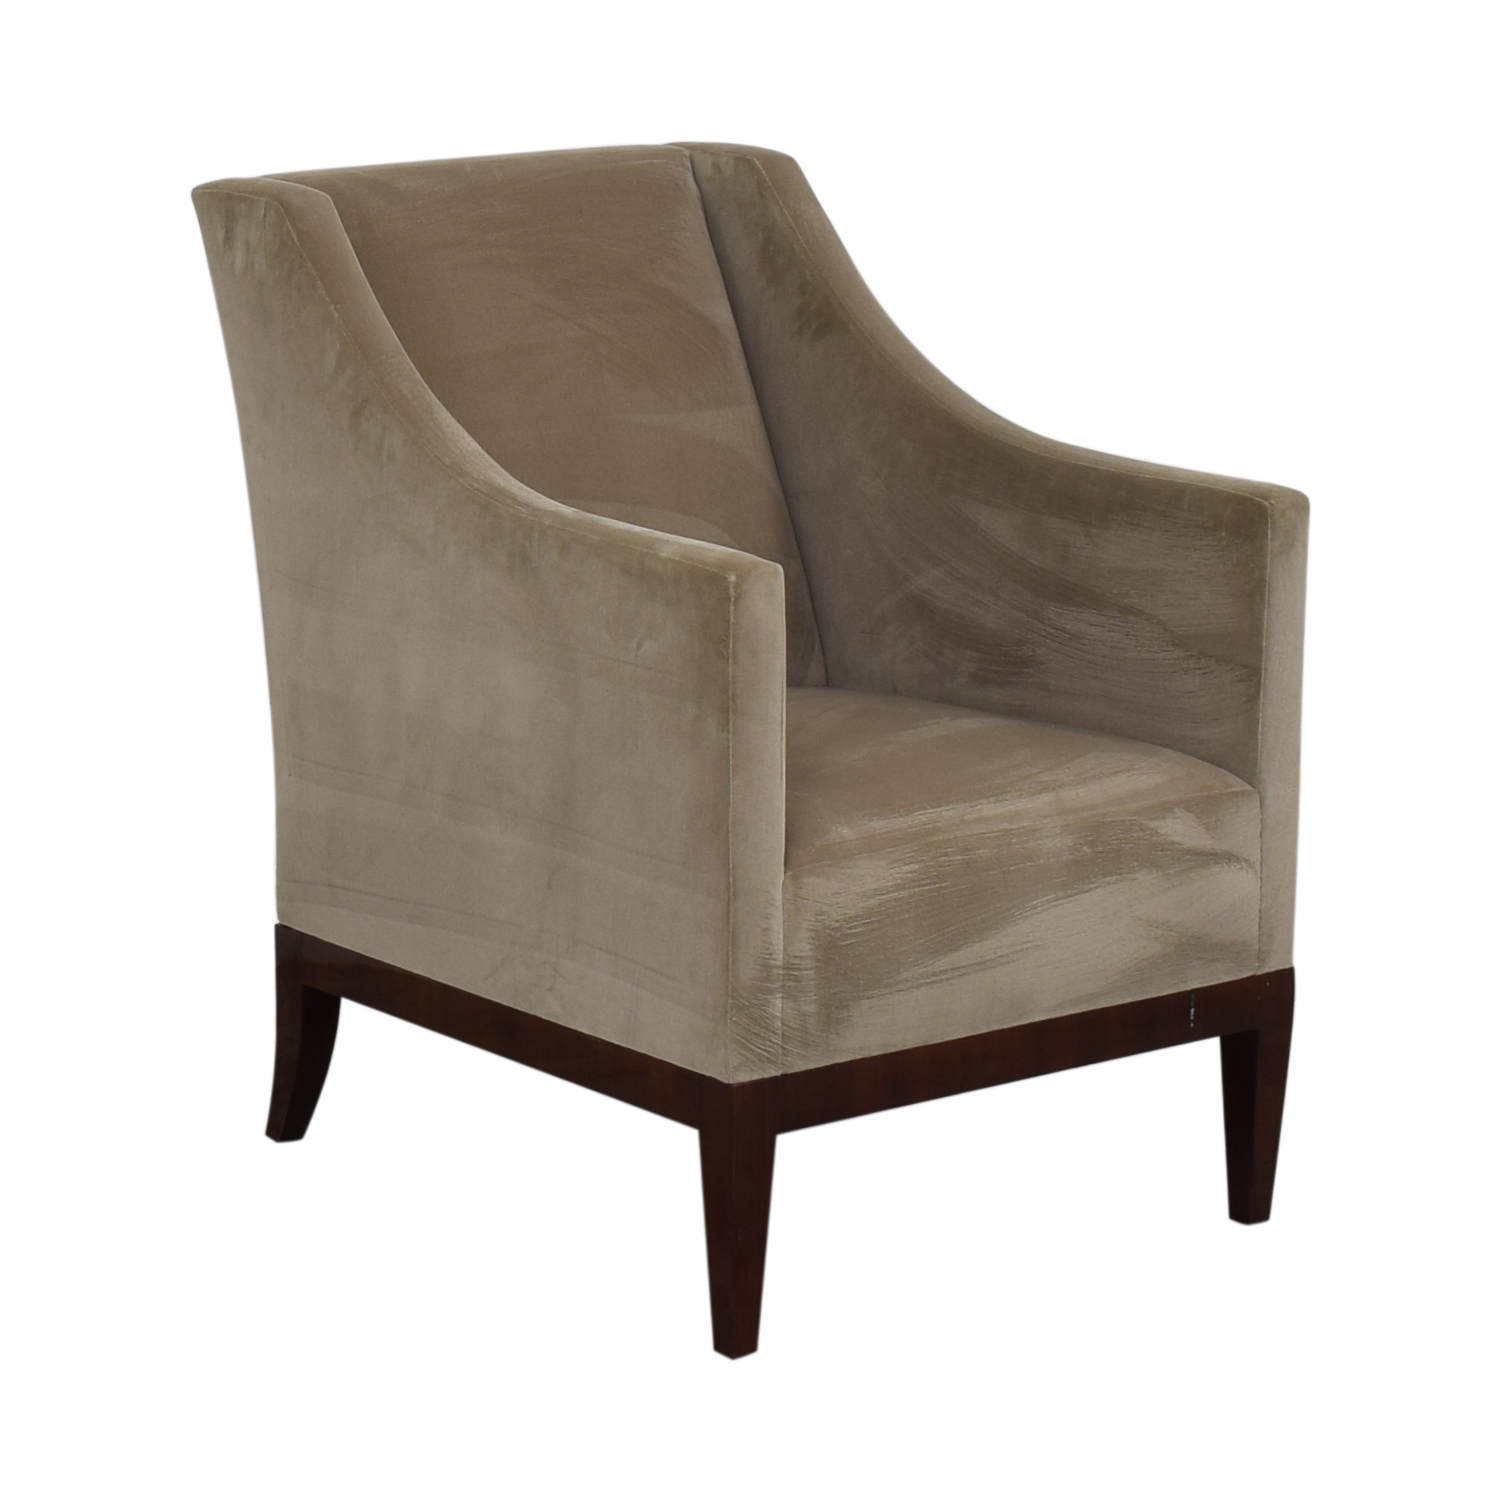 Gray Velvet Arm Accent Chair for sale